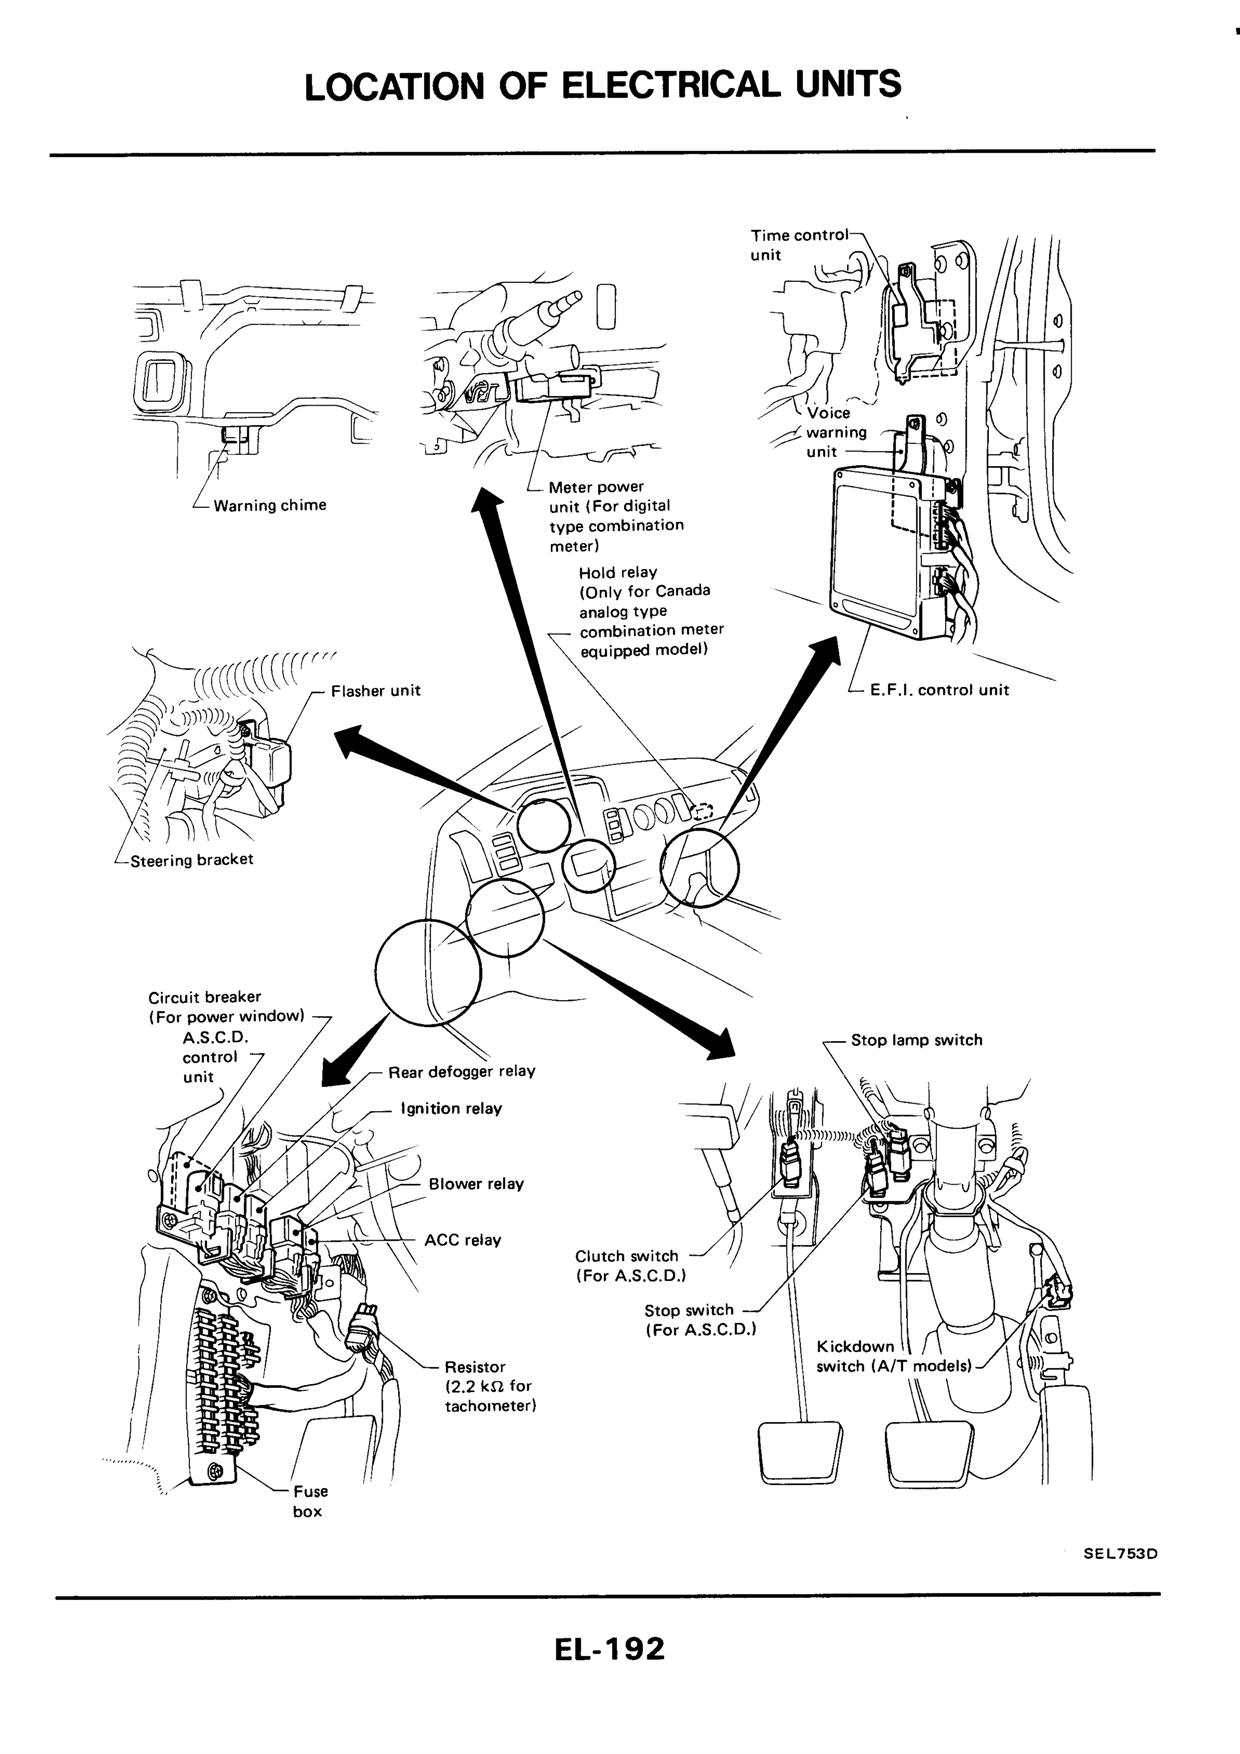 DL_6162] Nissan 300Zx Parts Diagram In Addition 300Zx Engine Wiring DiagramSemec Spon Otene Trofu Dogan Unec Hylec Sequ Piot Rect Mohammedshrine  Librar Wiring 101